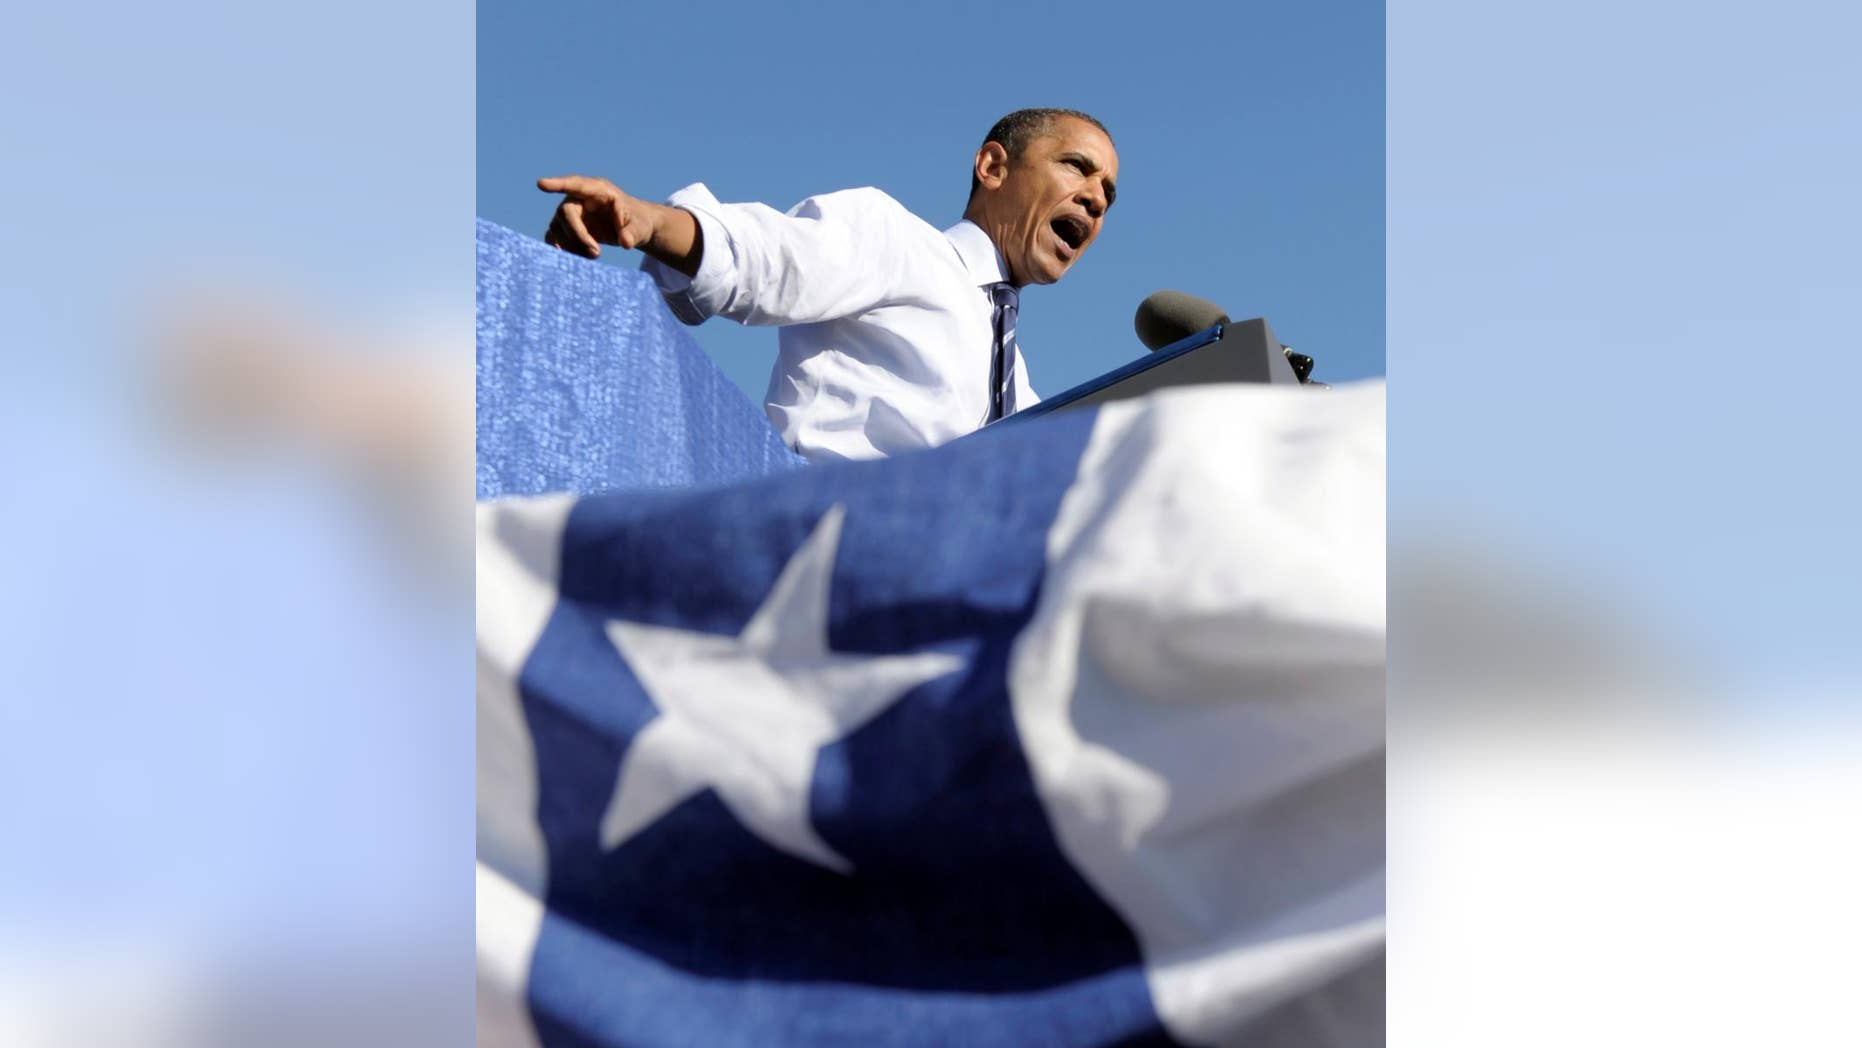 President Barack Obama speaks at a campaign rally for Maryland Gov. Martin O'Malley,Thursday, Oct. 7, 2010, at Bowie State University in Bowie, Md. (AP Photo/Susan Walsh)